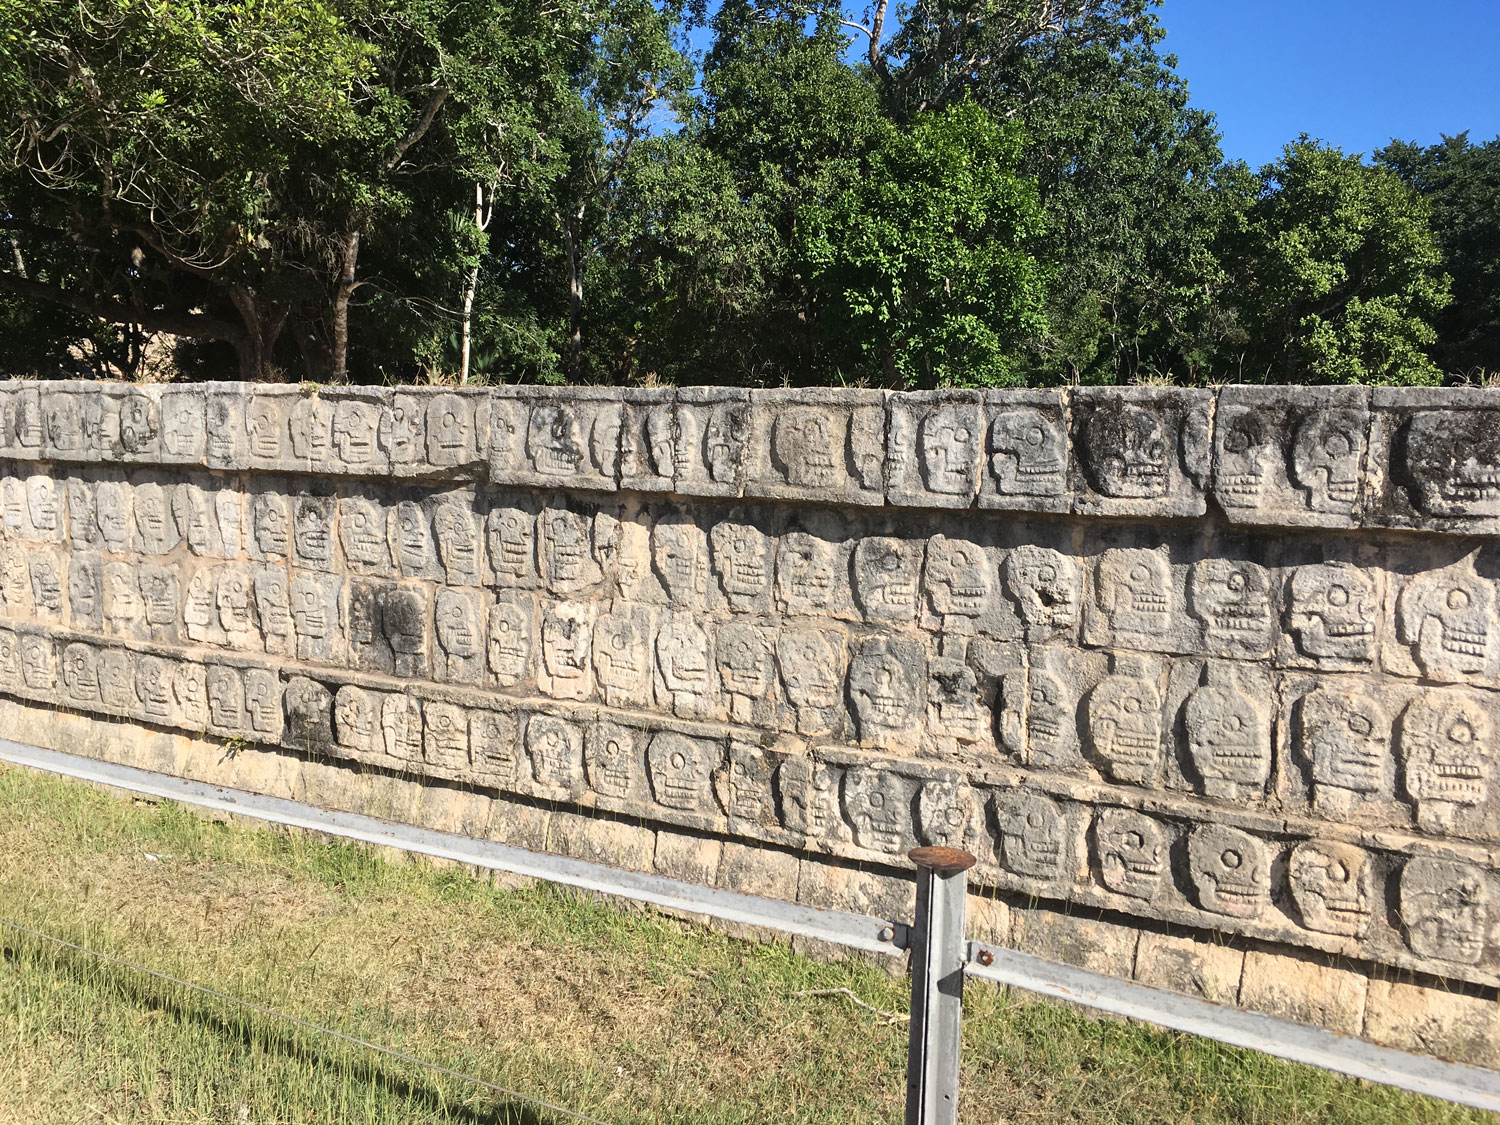 Tzompantli platform with skulls at Chichén Itzá.